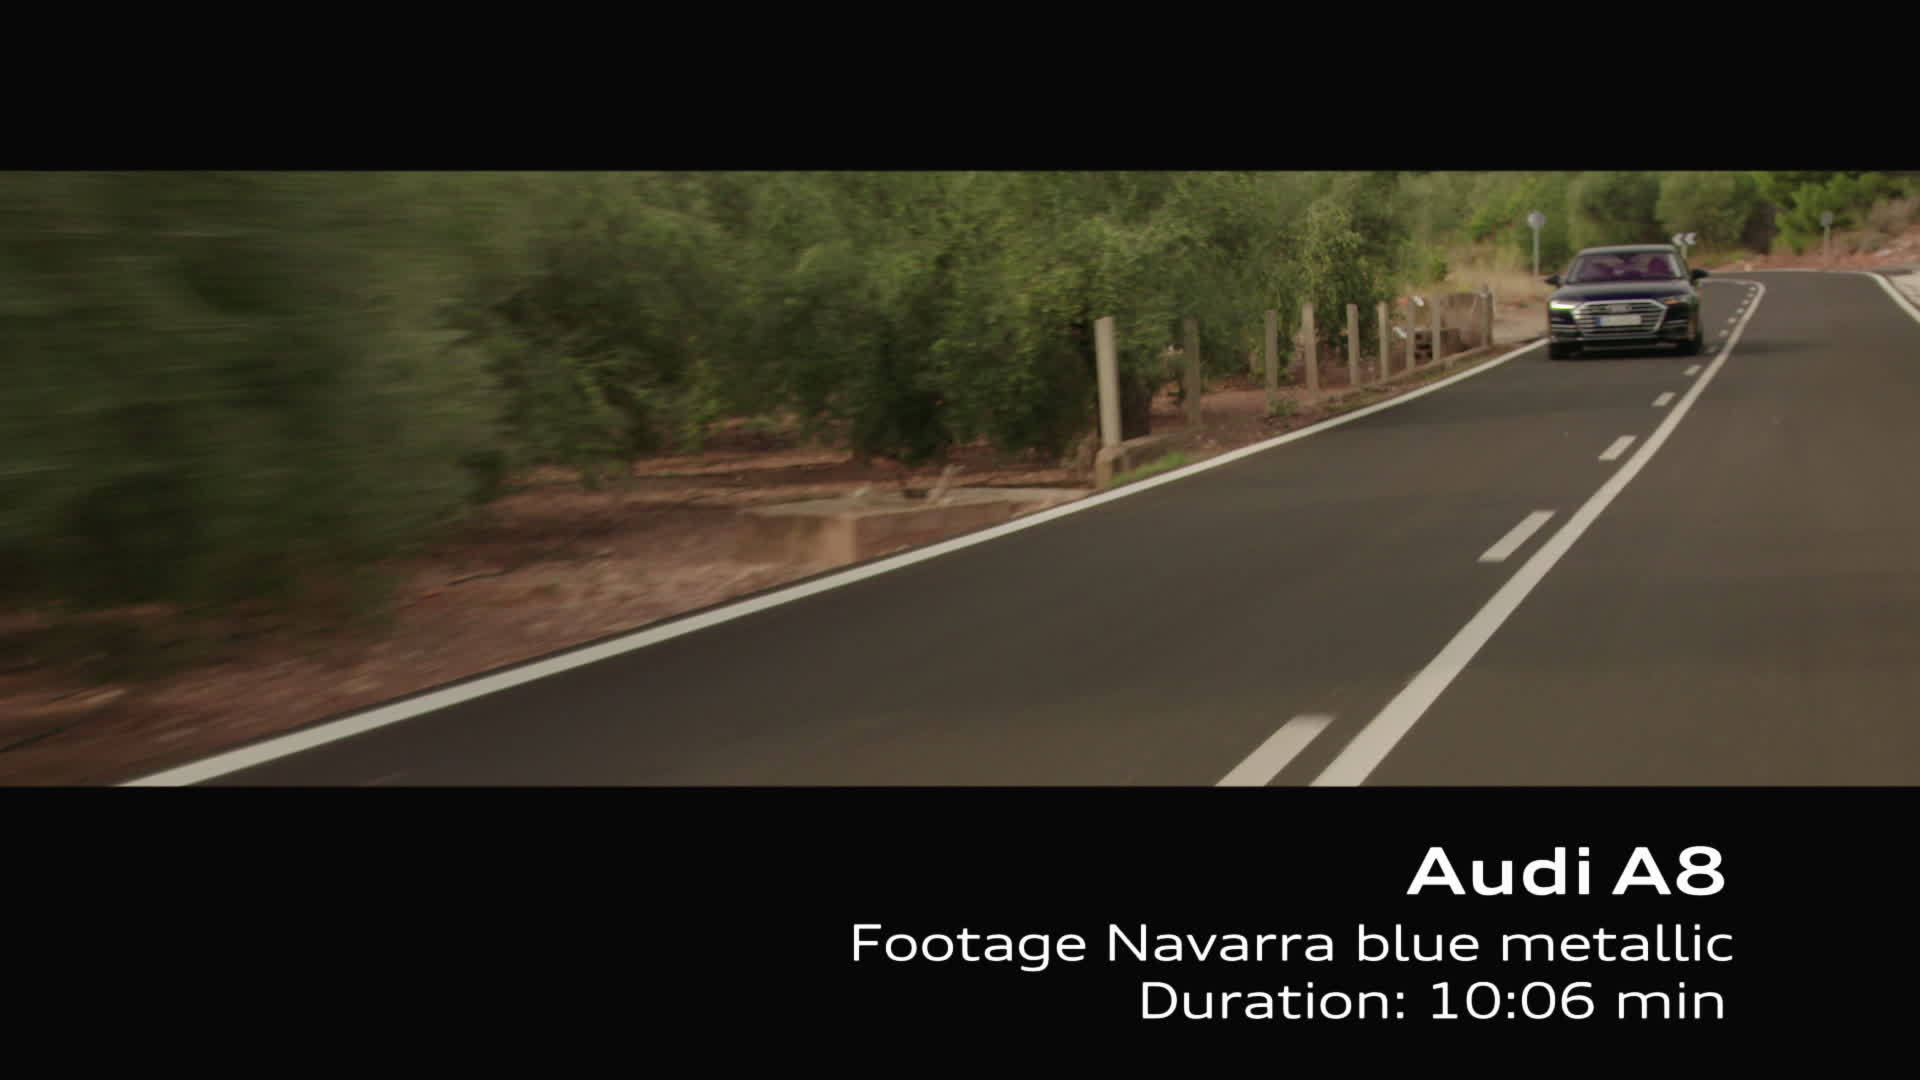 Footage Audi A8 on Location